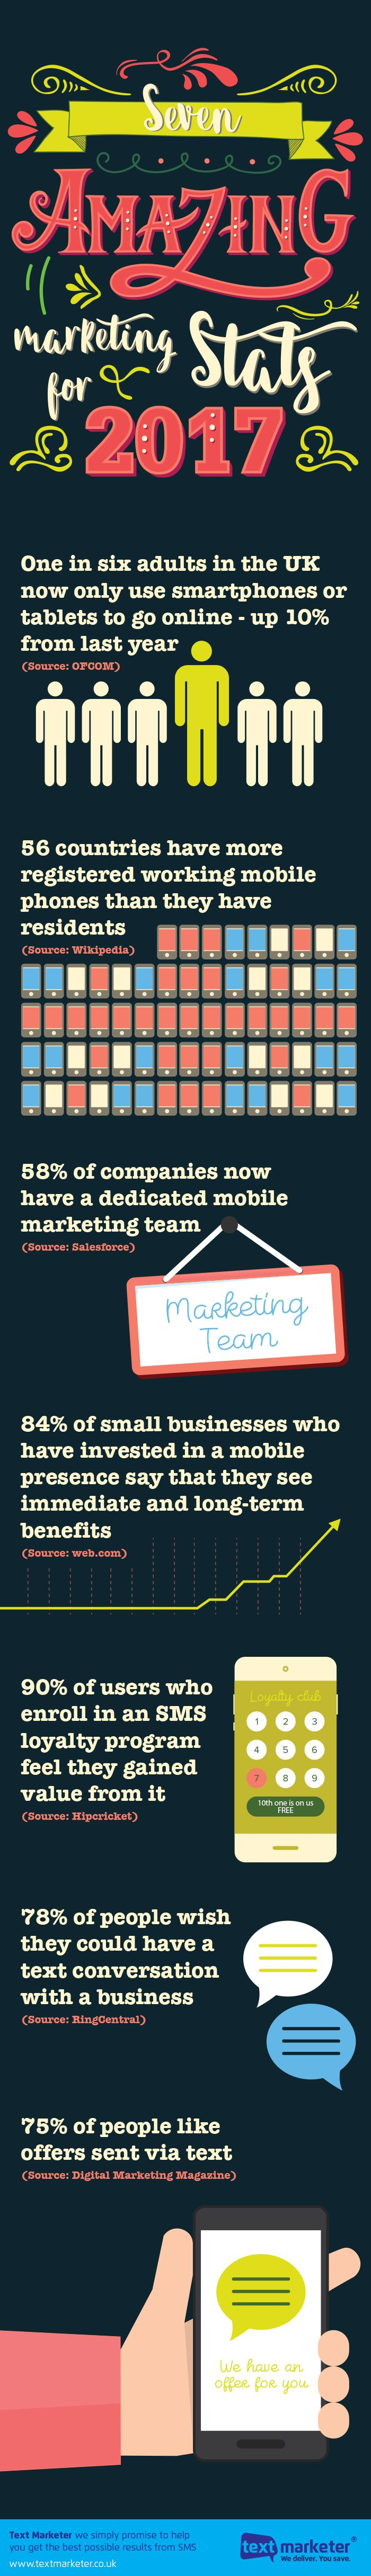 7 Amazing #Marketing Stats That Will Make You Change Your 2017 Strategy #Infographic